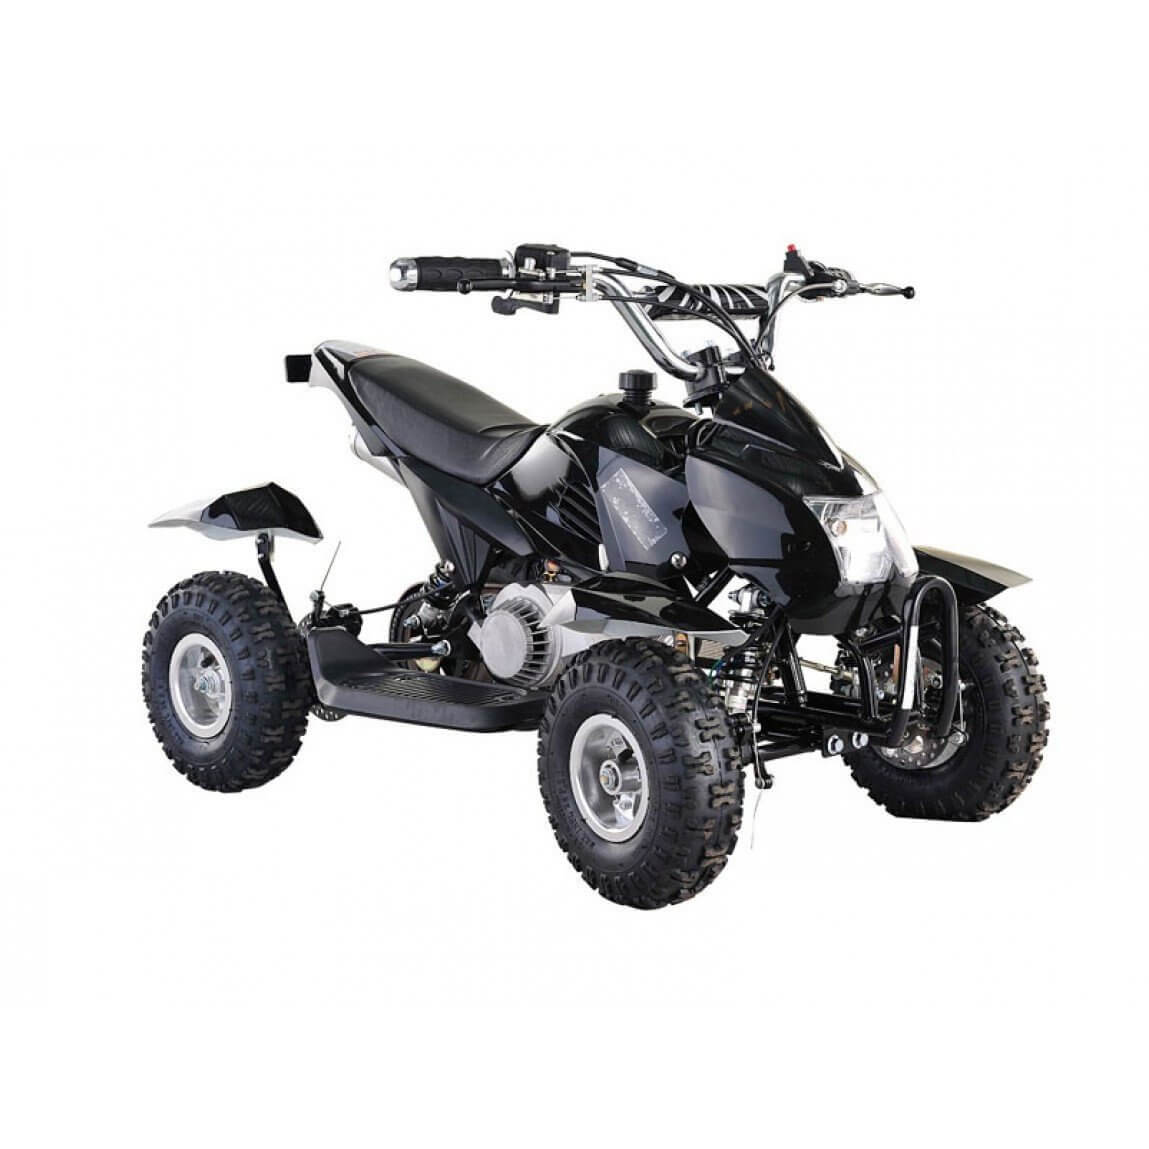 RAF ATV 49 CC QUAD BIKE OFF ROAD KEY START - rafplay